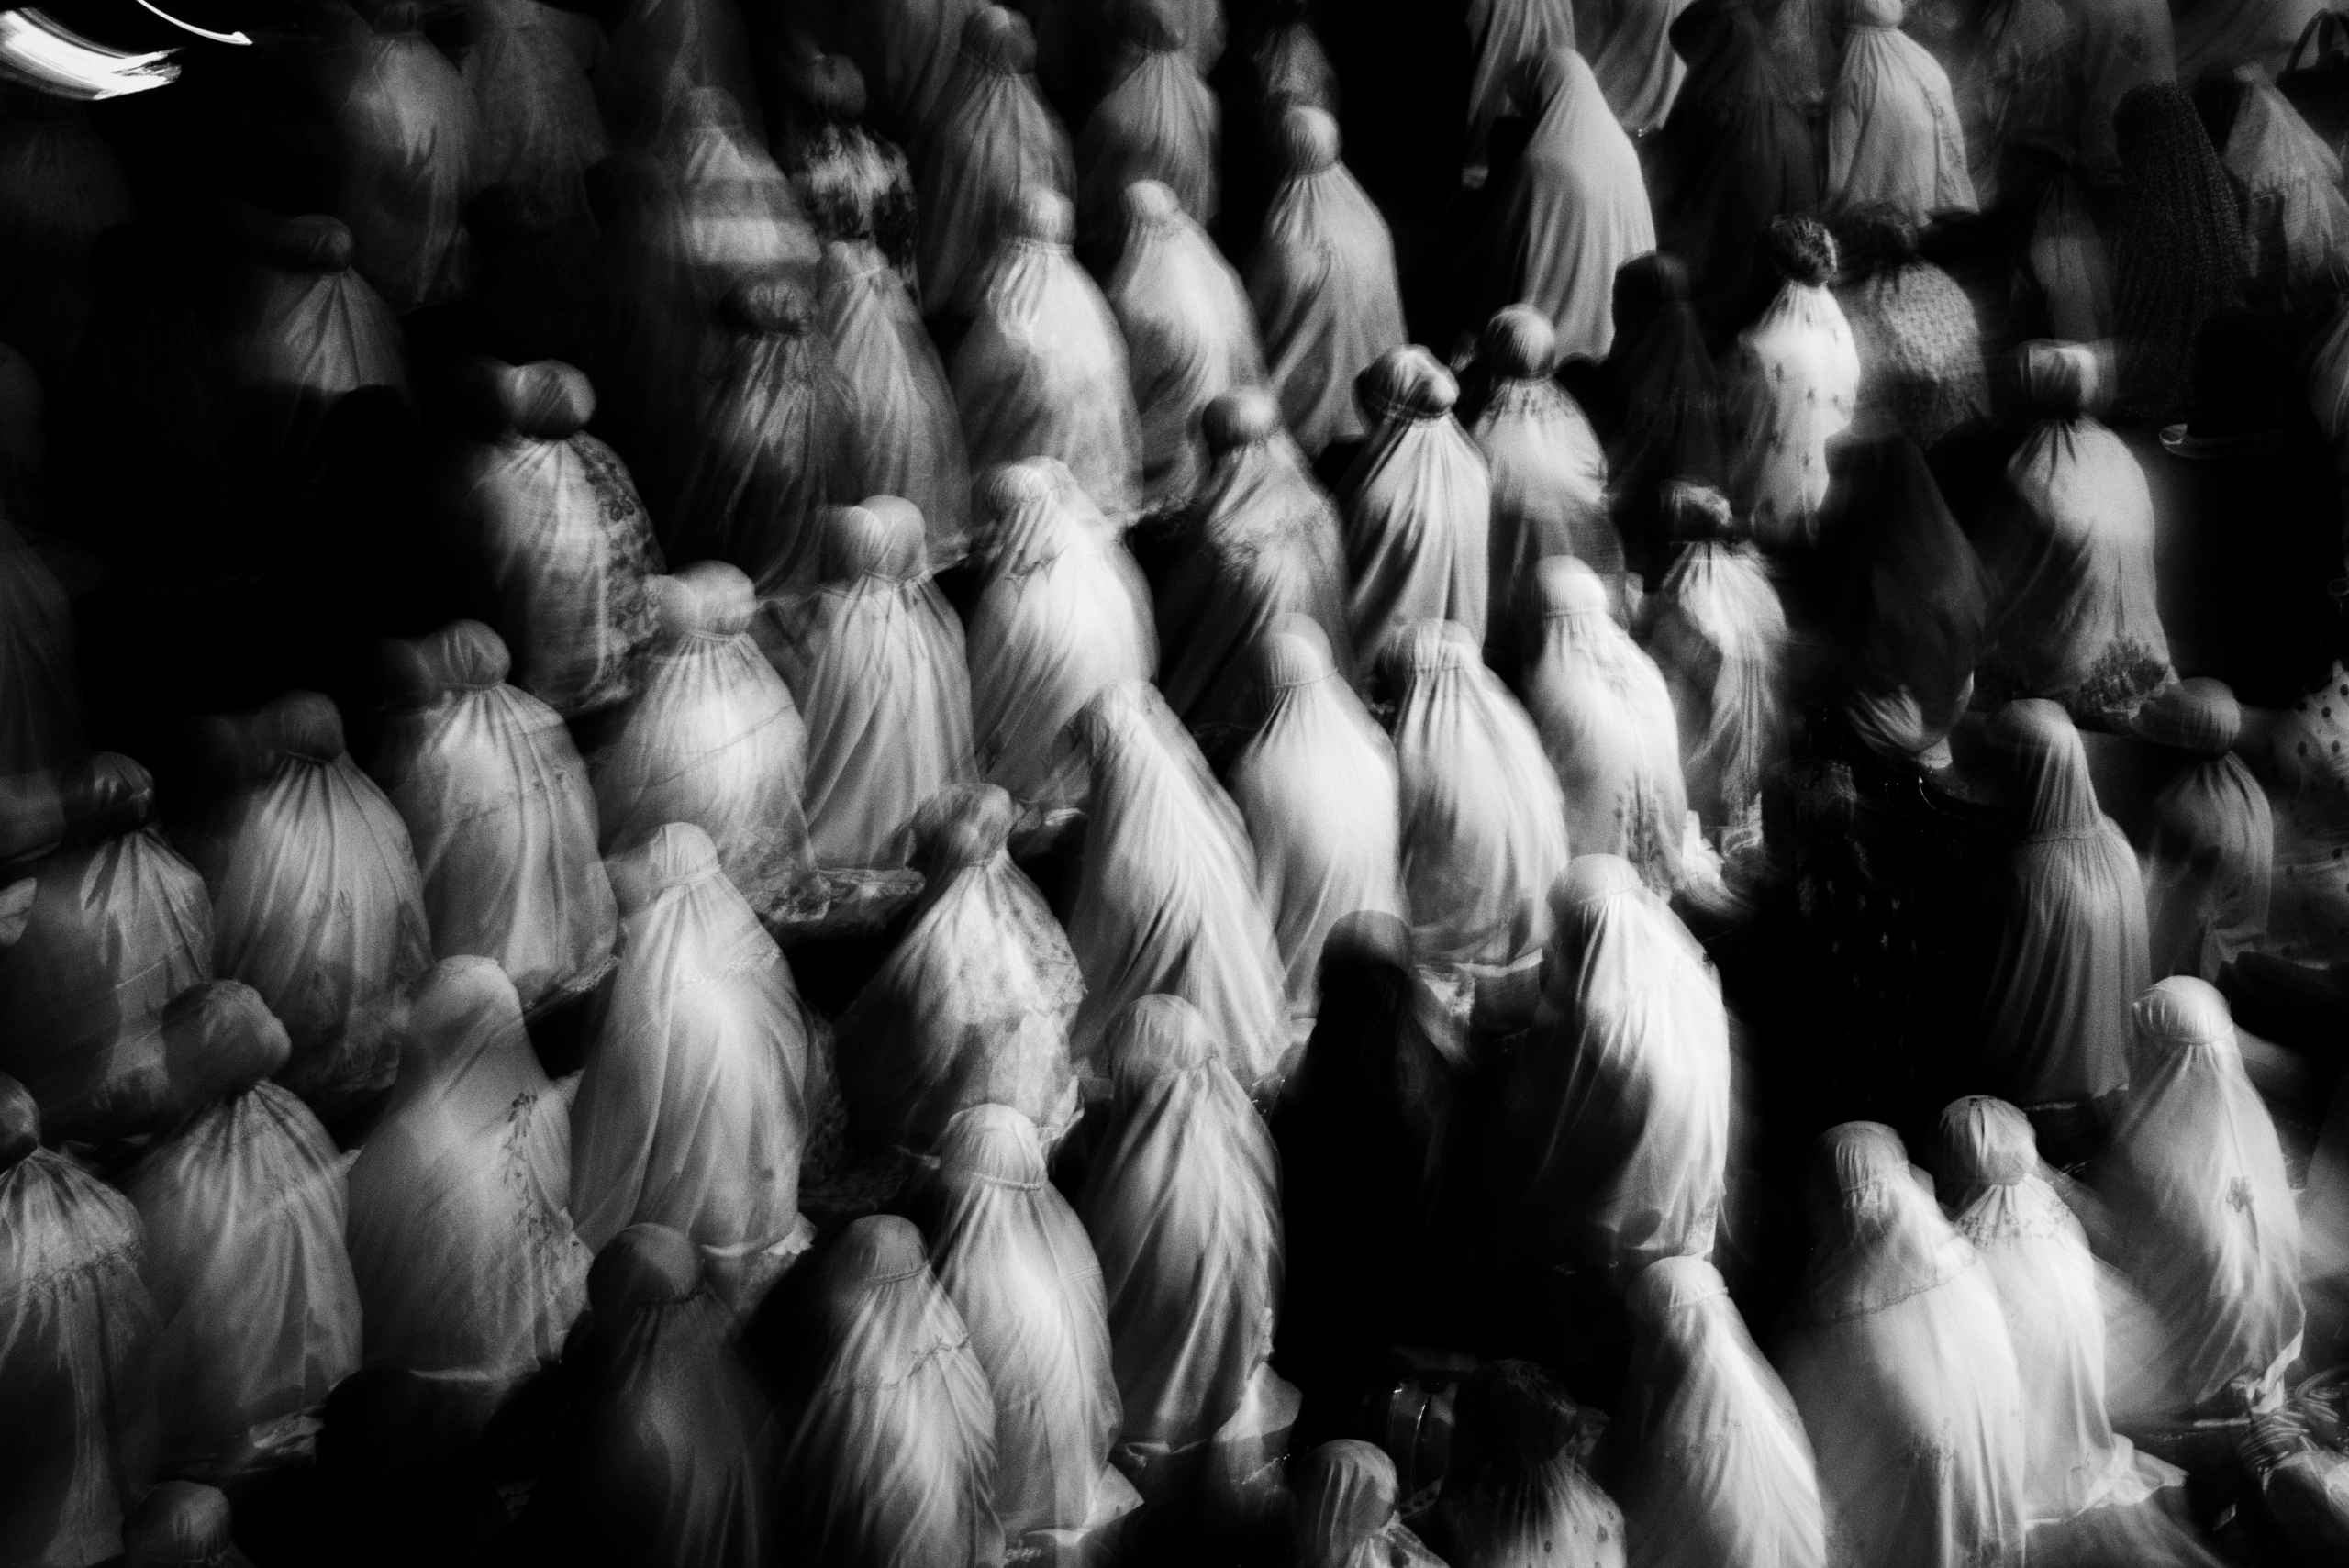 Indonesian Muslims women perform an evening prayer. Jakarta, Indonesia.